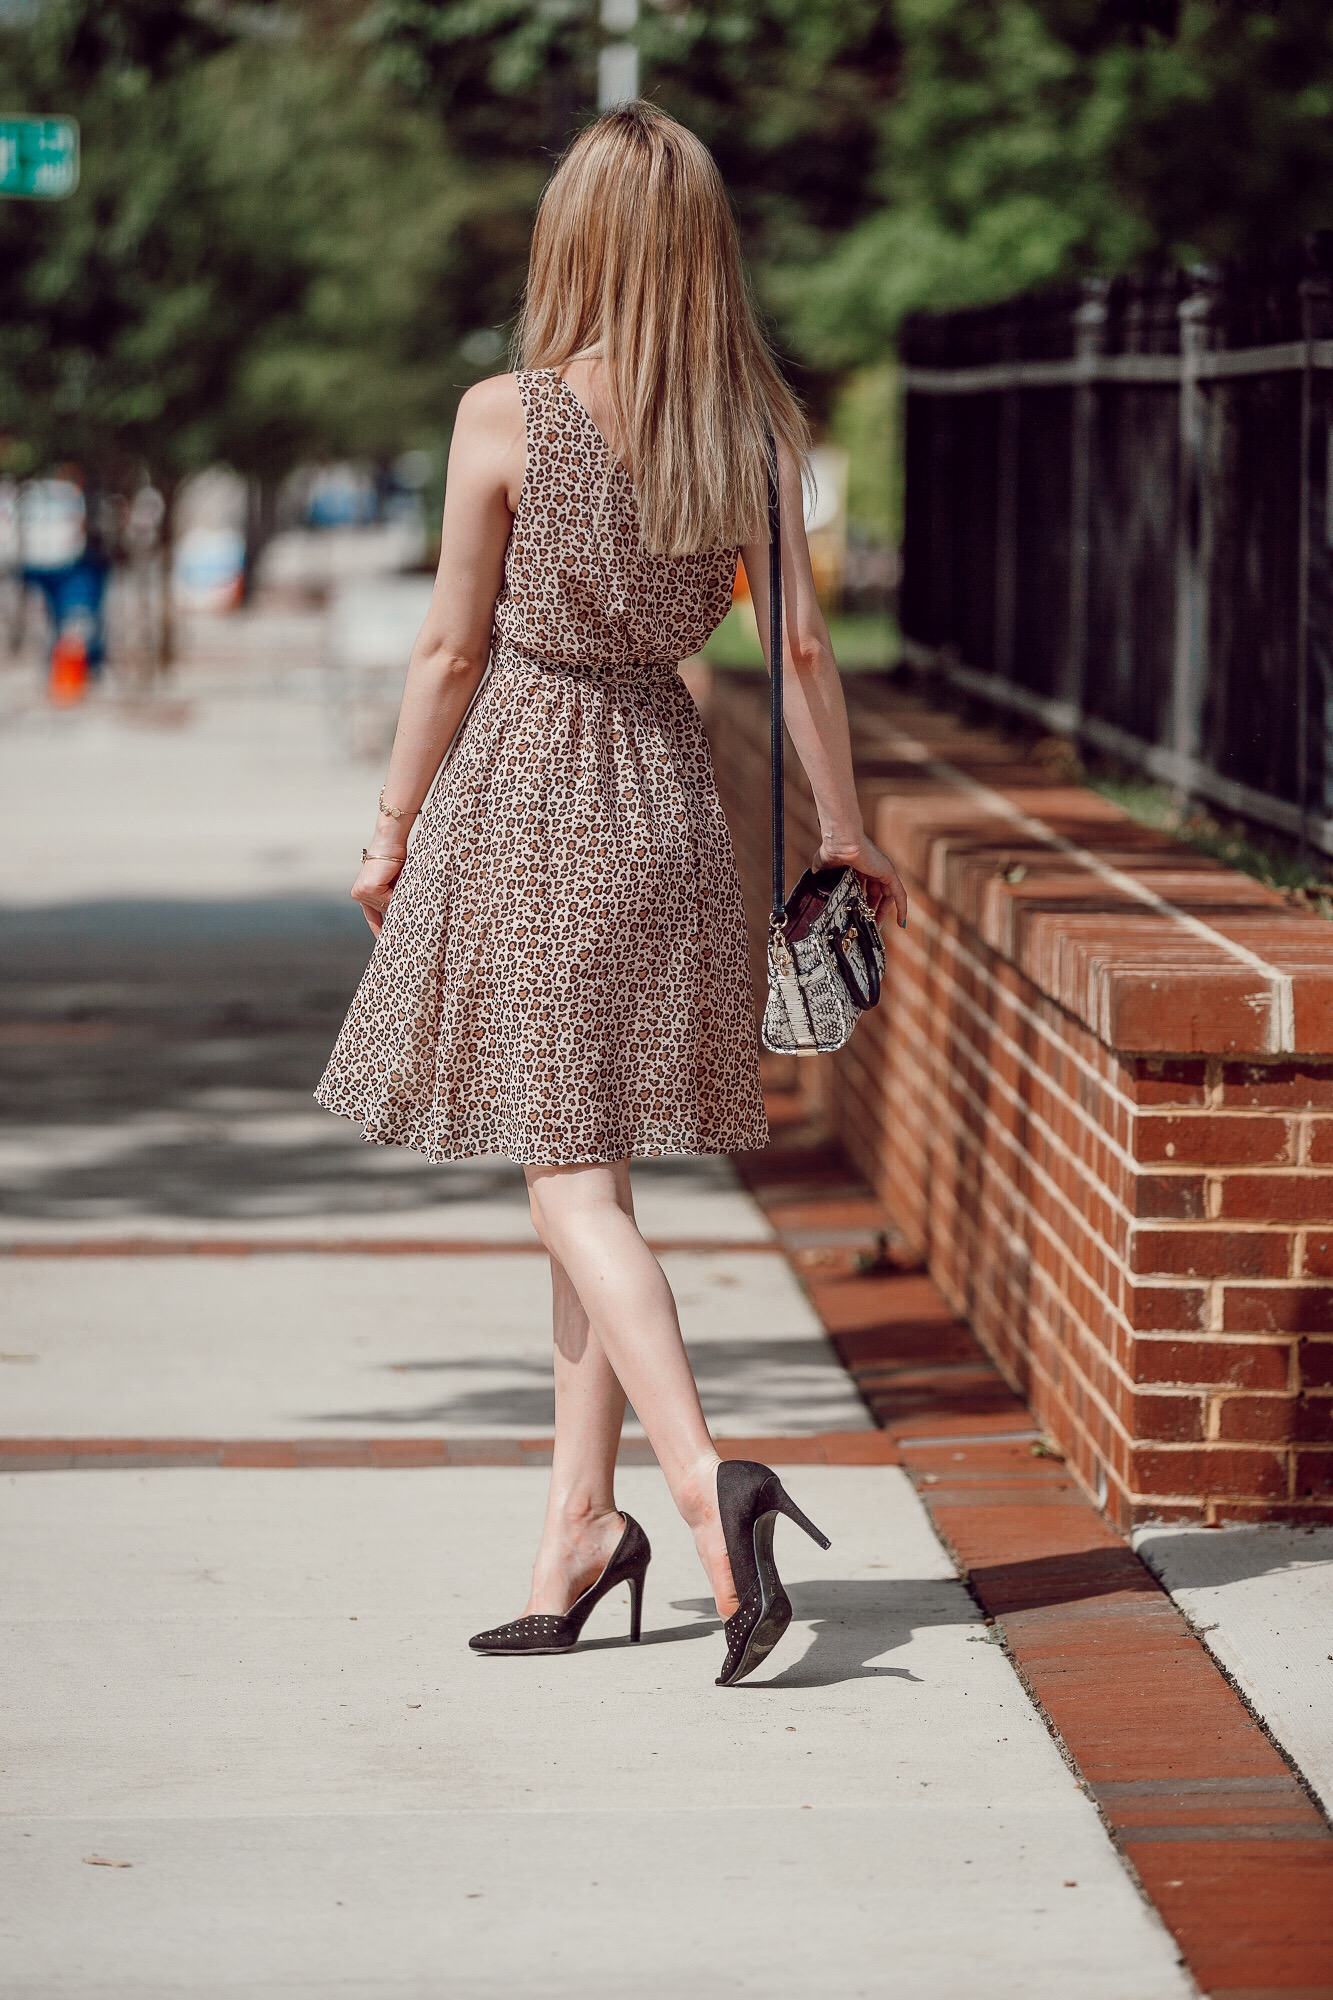 How To Style Leopard Print |Affordable leopard print midi sleeveless dress from Target, black studded heels by Christian Siriano for Payless, and a black and white snake skin purse from Coach. Fashion inspiration by North Carolina fashion and lifestyle blogger Jessica Linn from Linn Style